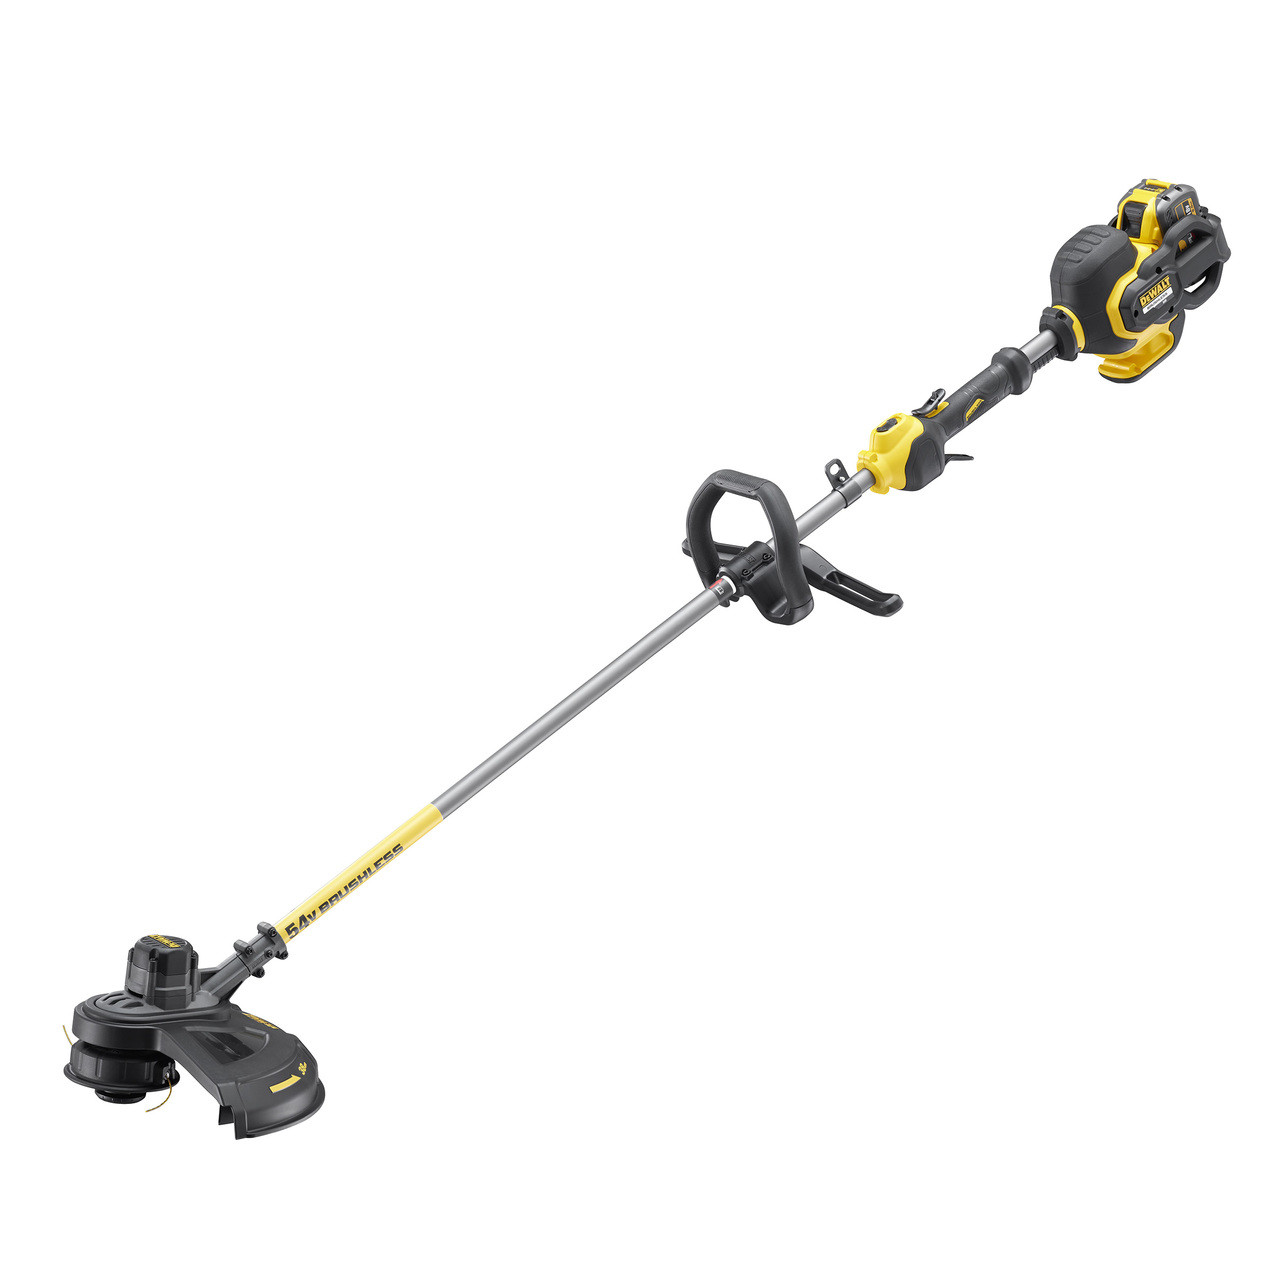 Dewalt DCM5713X1 54V Flexvolt Brushless Strimmer with Split Shaft (1 x 9Ah)